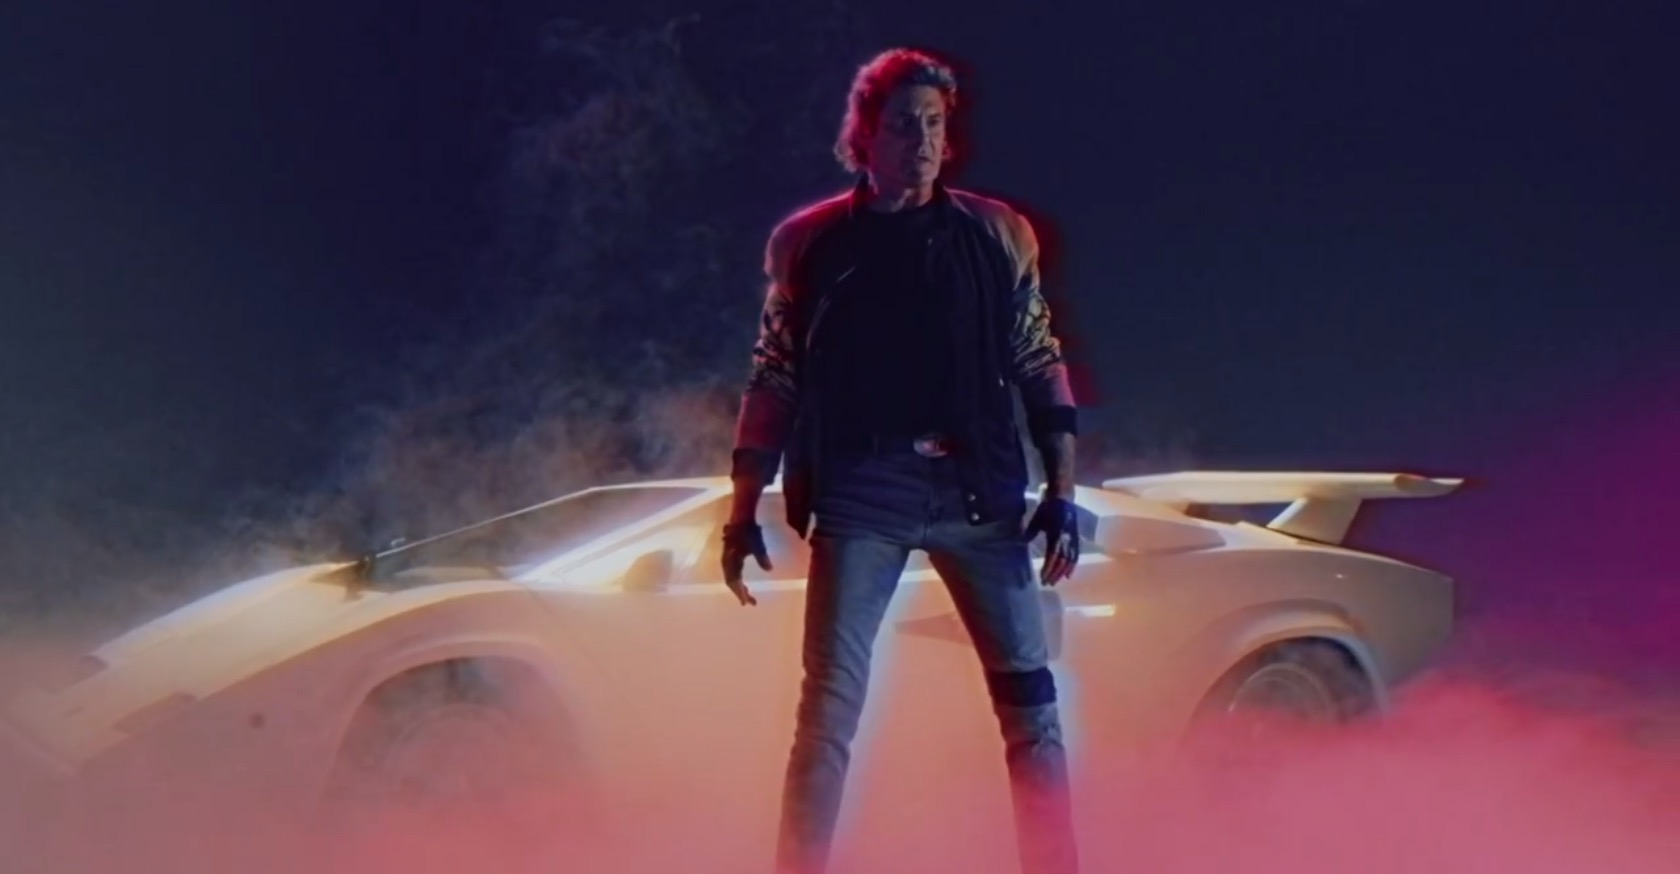 David Hasselhoff Has A Lamborghini Countach Hero Car In New 80s